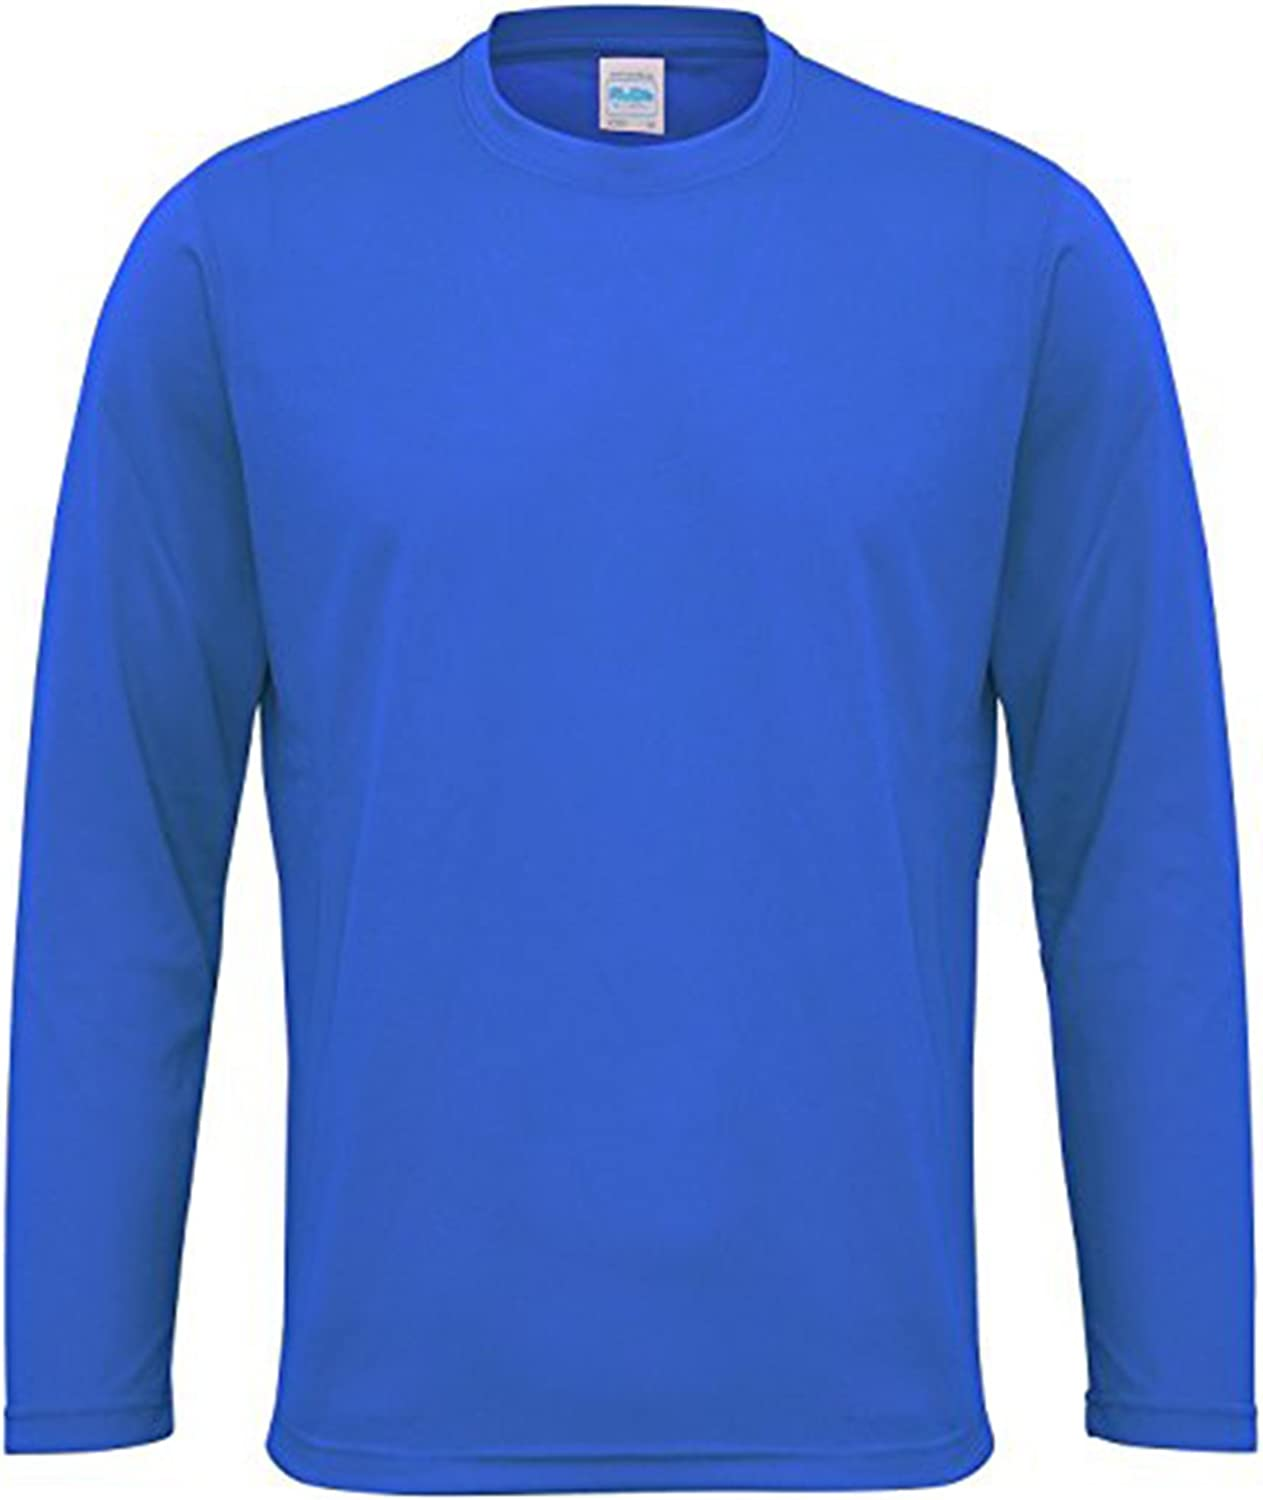 AWDis Long Sleeve Cool T shirt JC002 Self-fabric Crew Neck 100/% Polyester